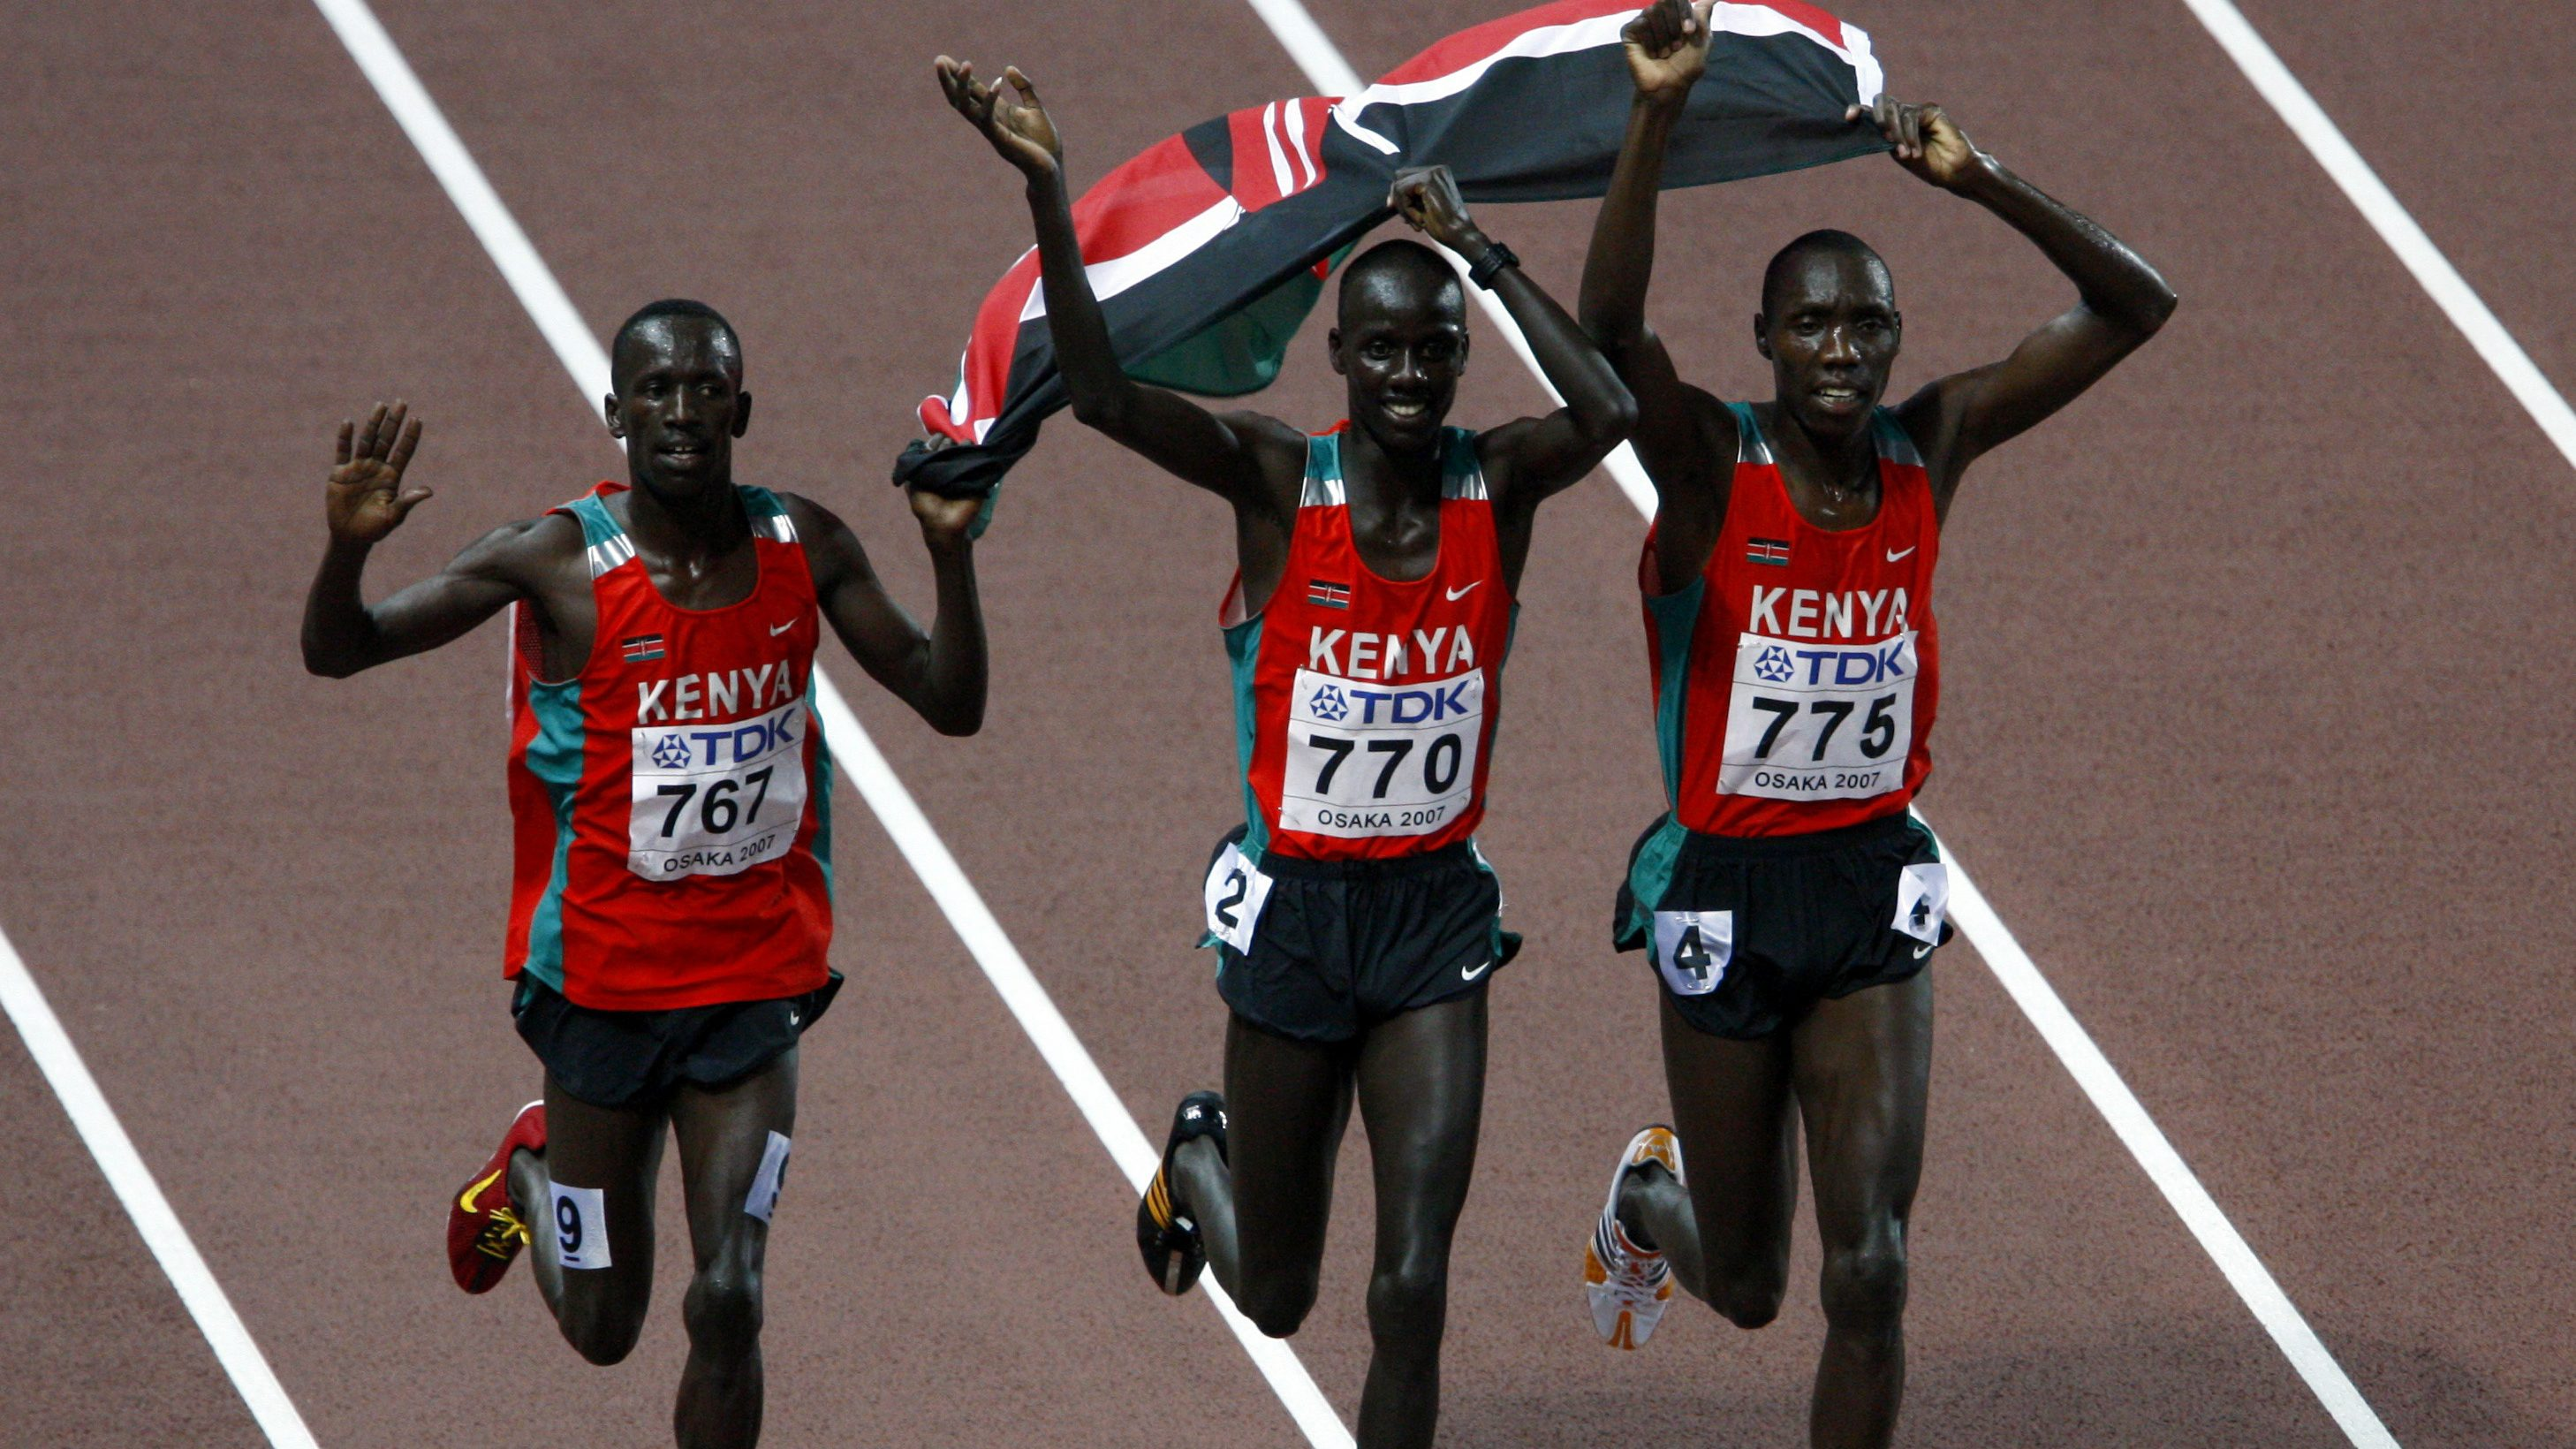 Kenya's Brimin Kiprop Kipruto (C), Richard Kipkemboi Mateelong (R) and Ezekiel Kemboi celebrate after the finals of the men's 3000 metres steeplechase during the 11th IAAF World Athletics Championship in Osaka August 28, 2007. REUTERS/Brian Snyder (JAPAN)   also see GF2E469187301 - RTR1T665